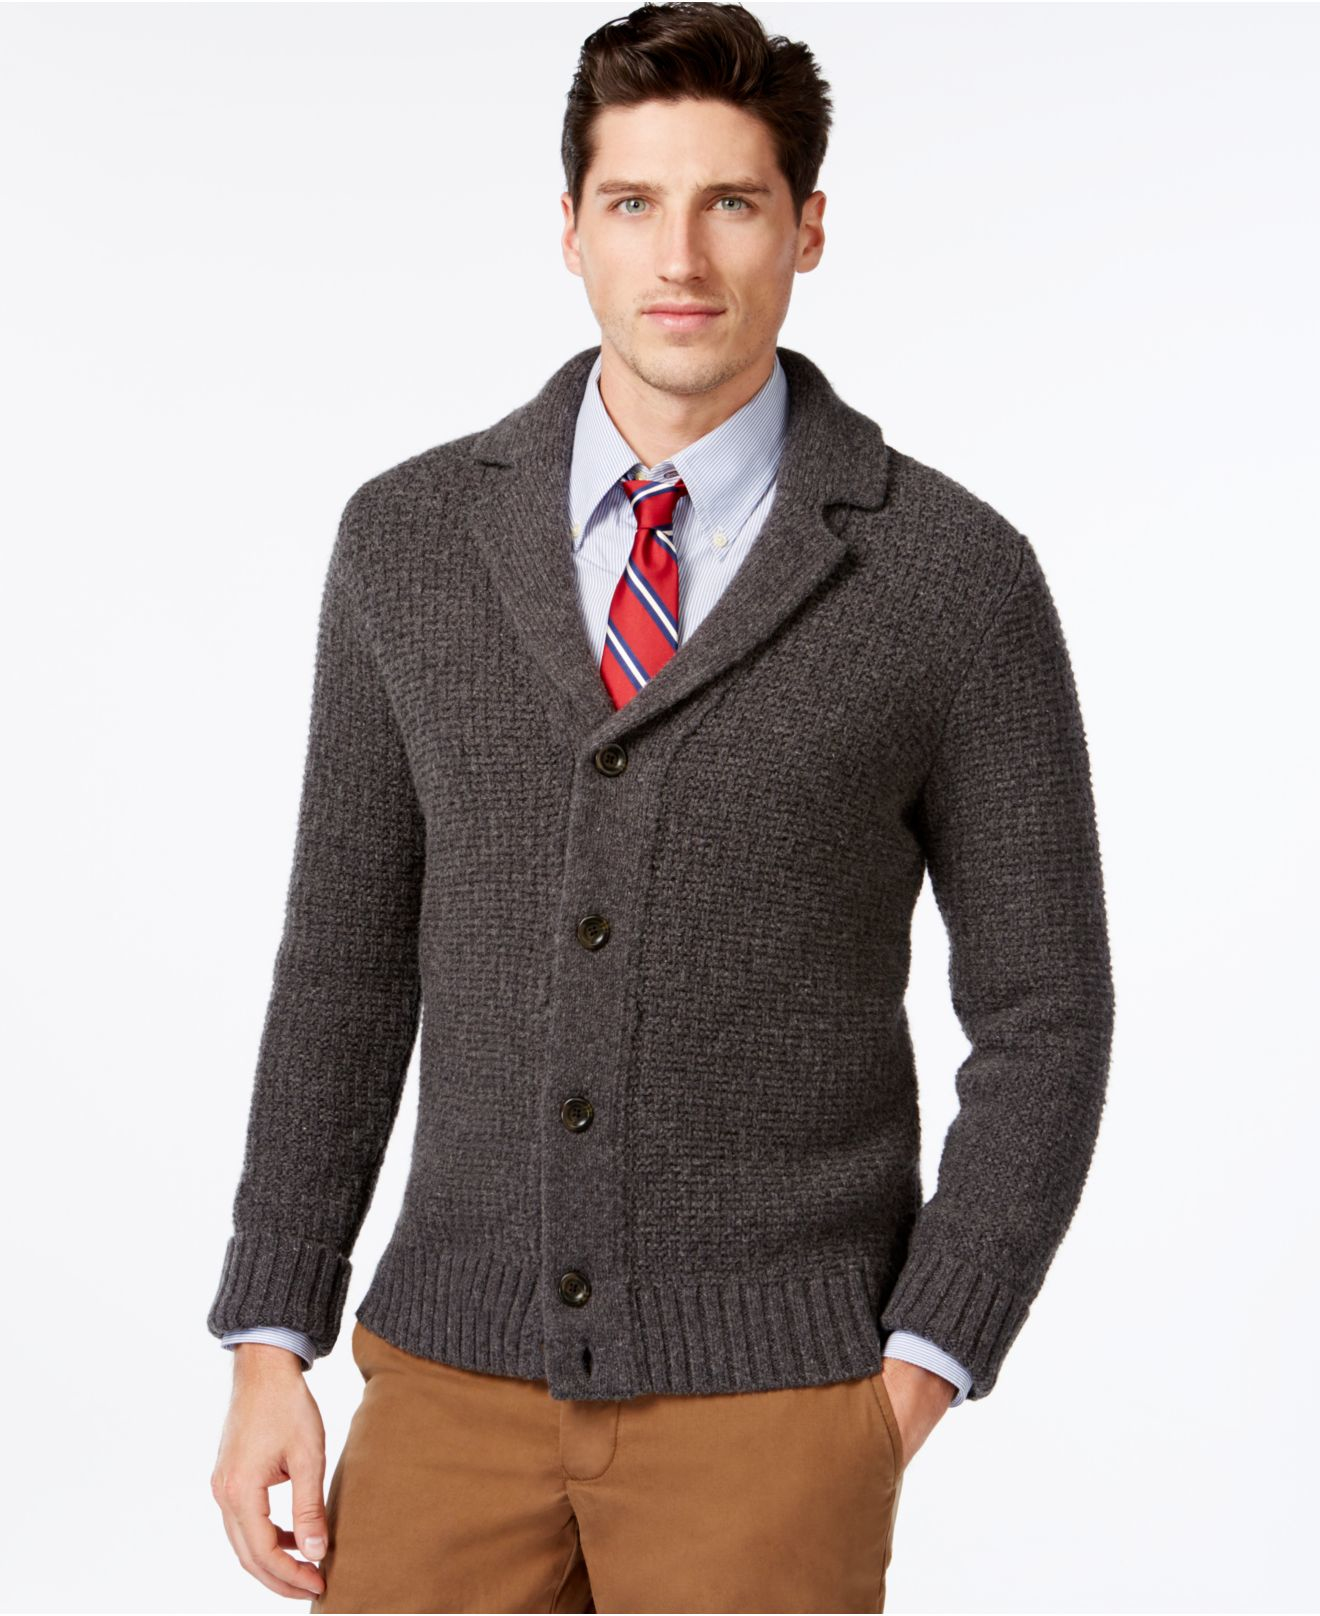 How to combine a Tommy Hilfiger cardigan